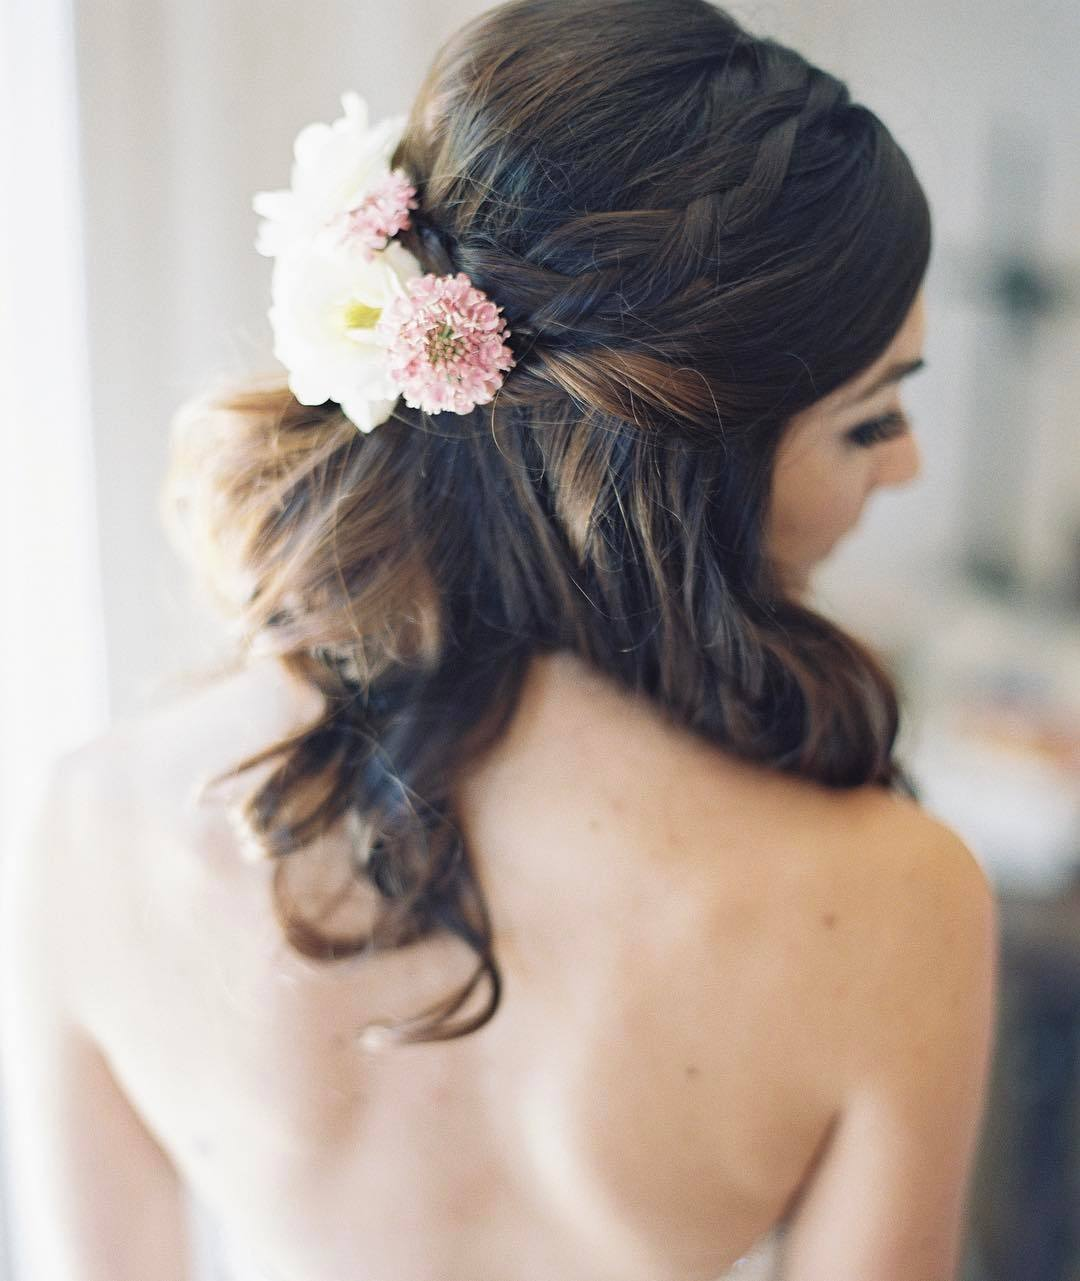 Wedding hairstyles: Woman medium-length dark brown hair styled into a wavy half-up, half-up braids with flowers